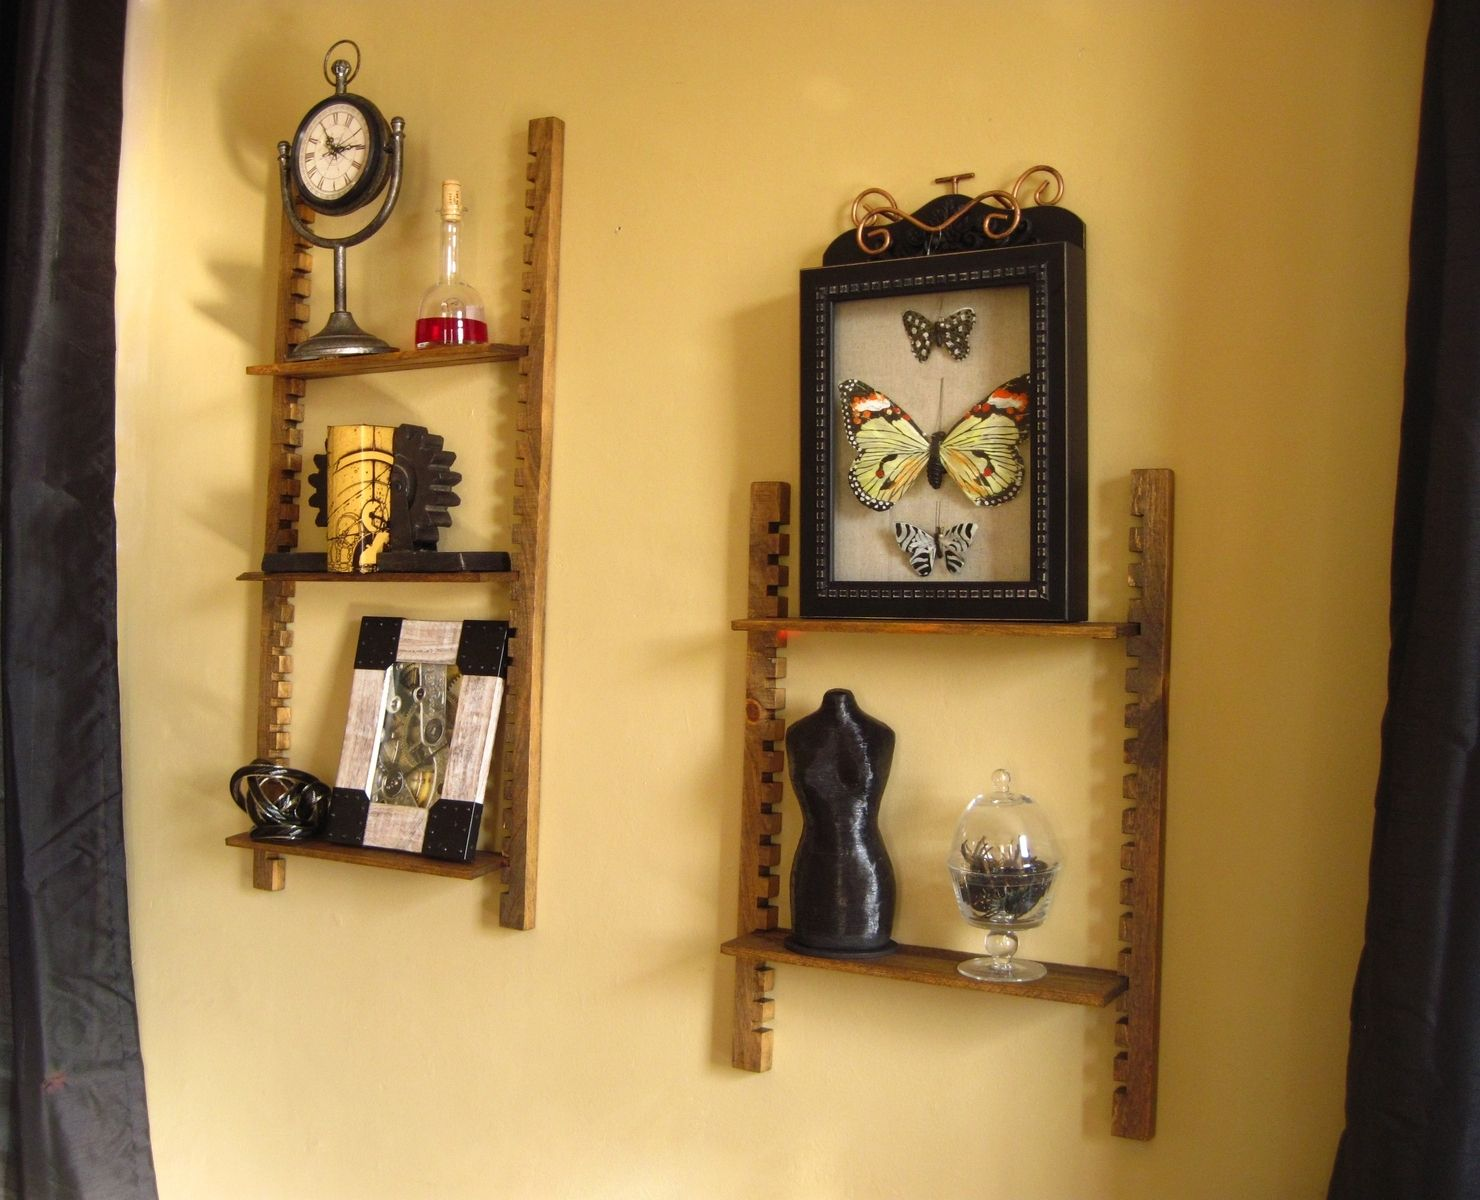 Ring In The Steampunk Decor To Pimp Up Your Home: Handmade Steampunk Cog Shelf By Sky Mountain Woodcraft